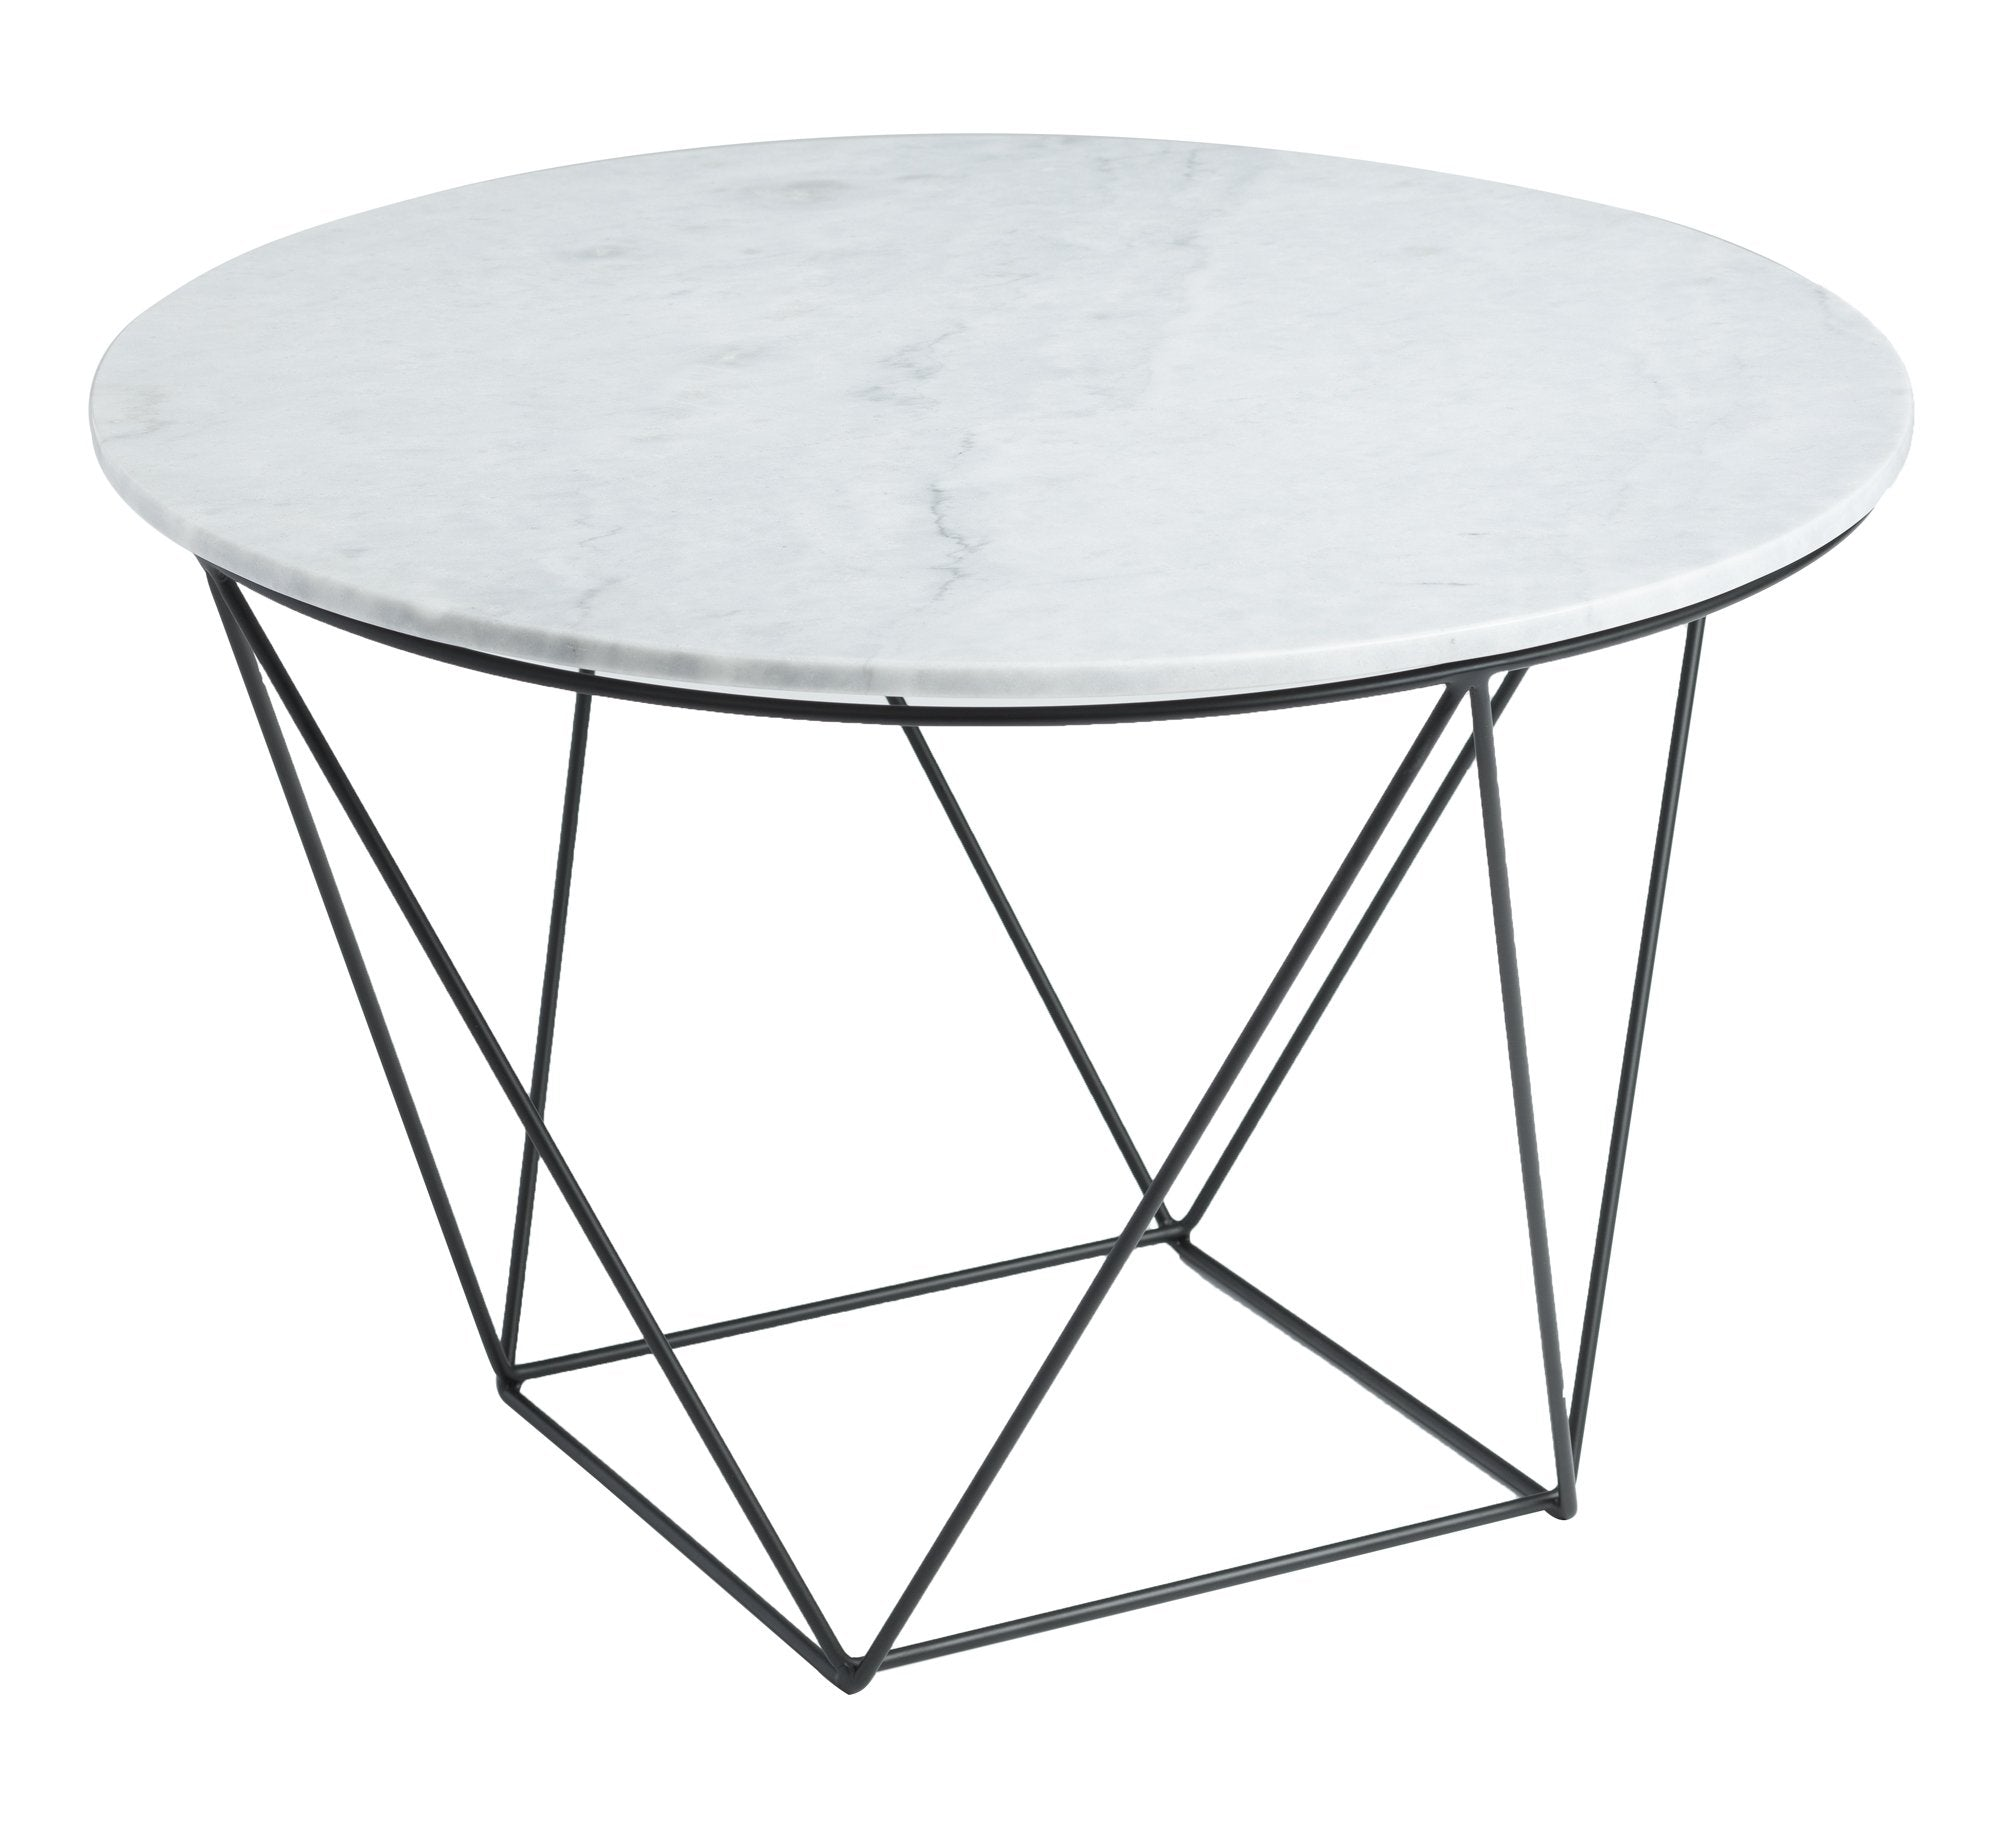 Picture of Valencia Round Side Table - White Marble/Black Matte